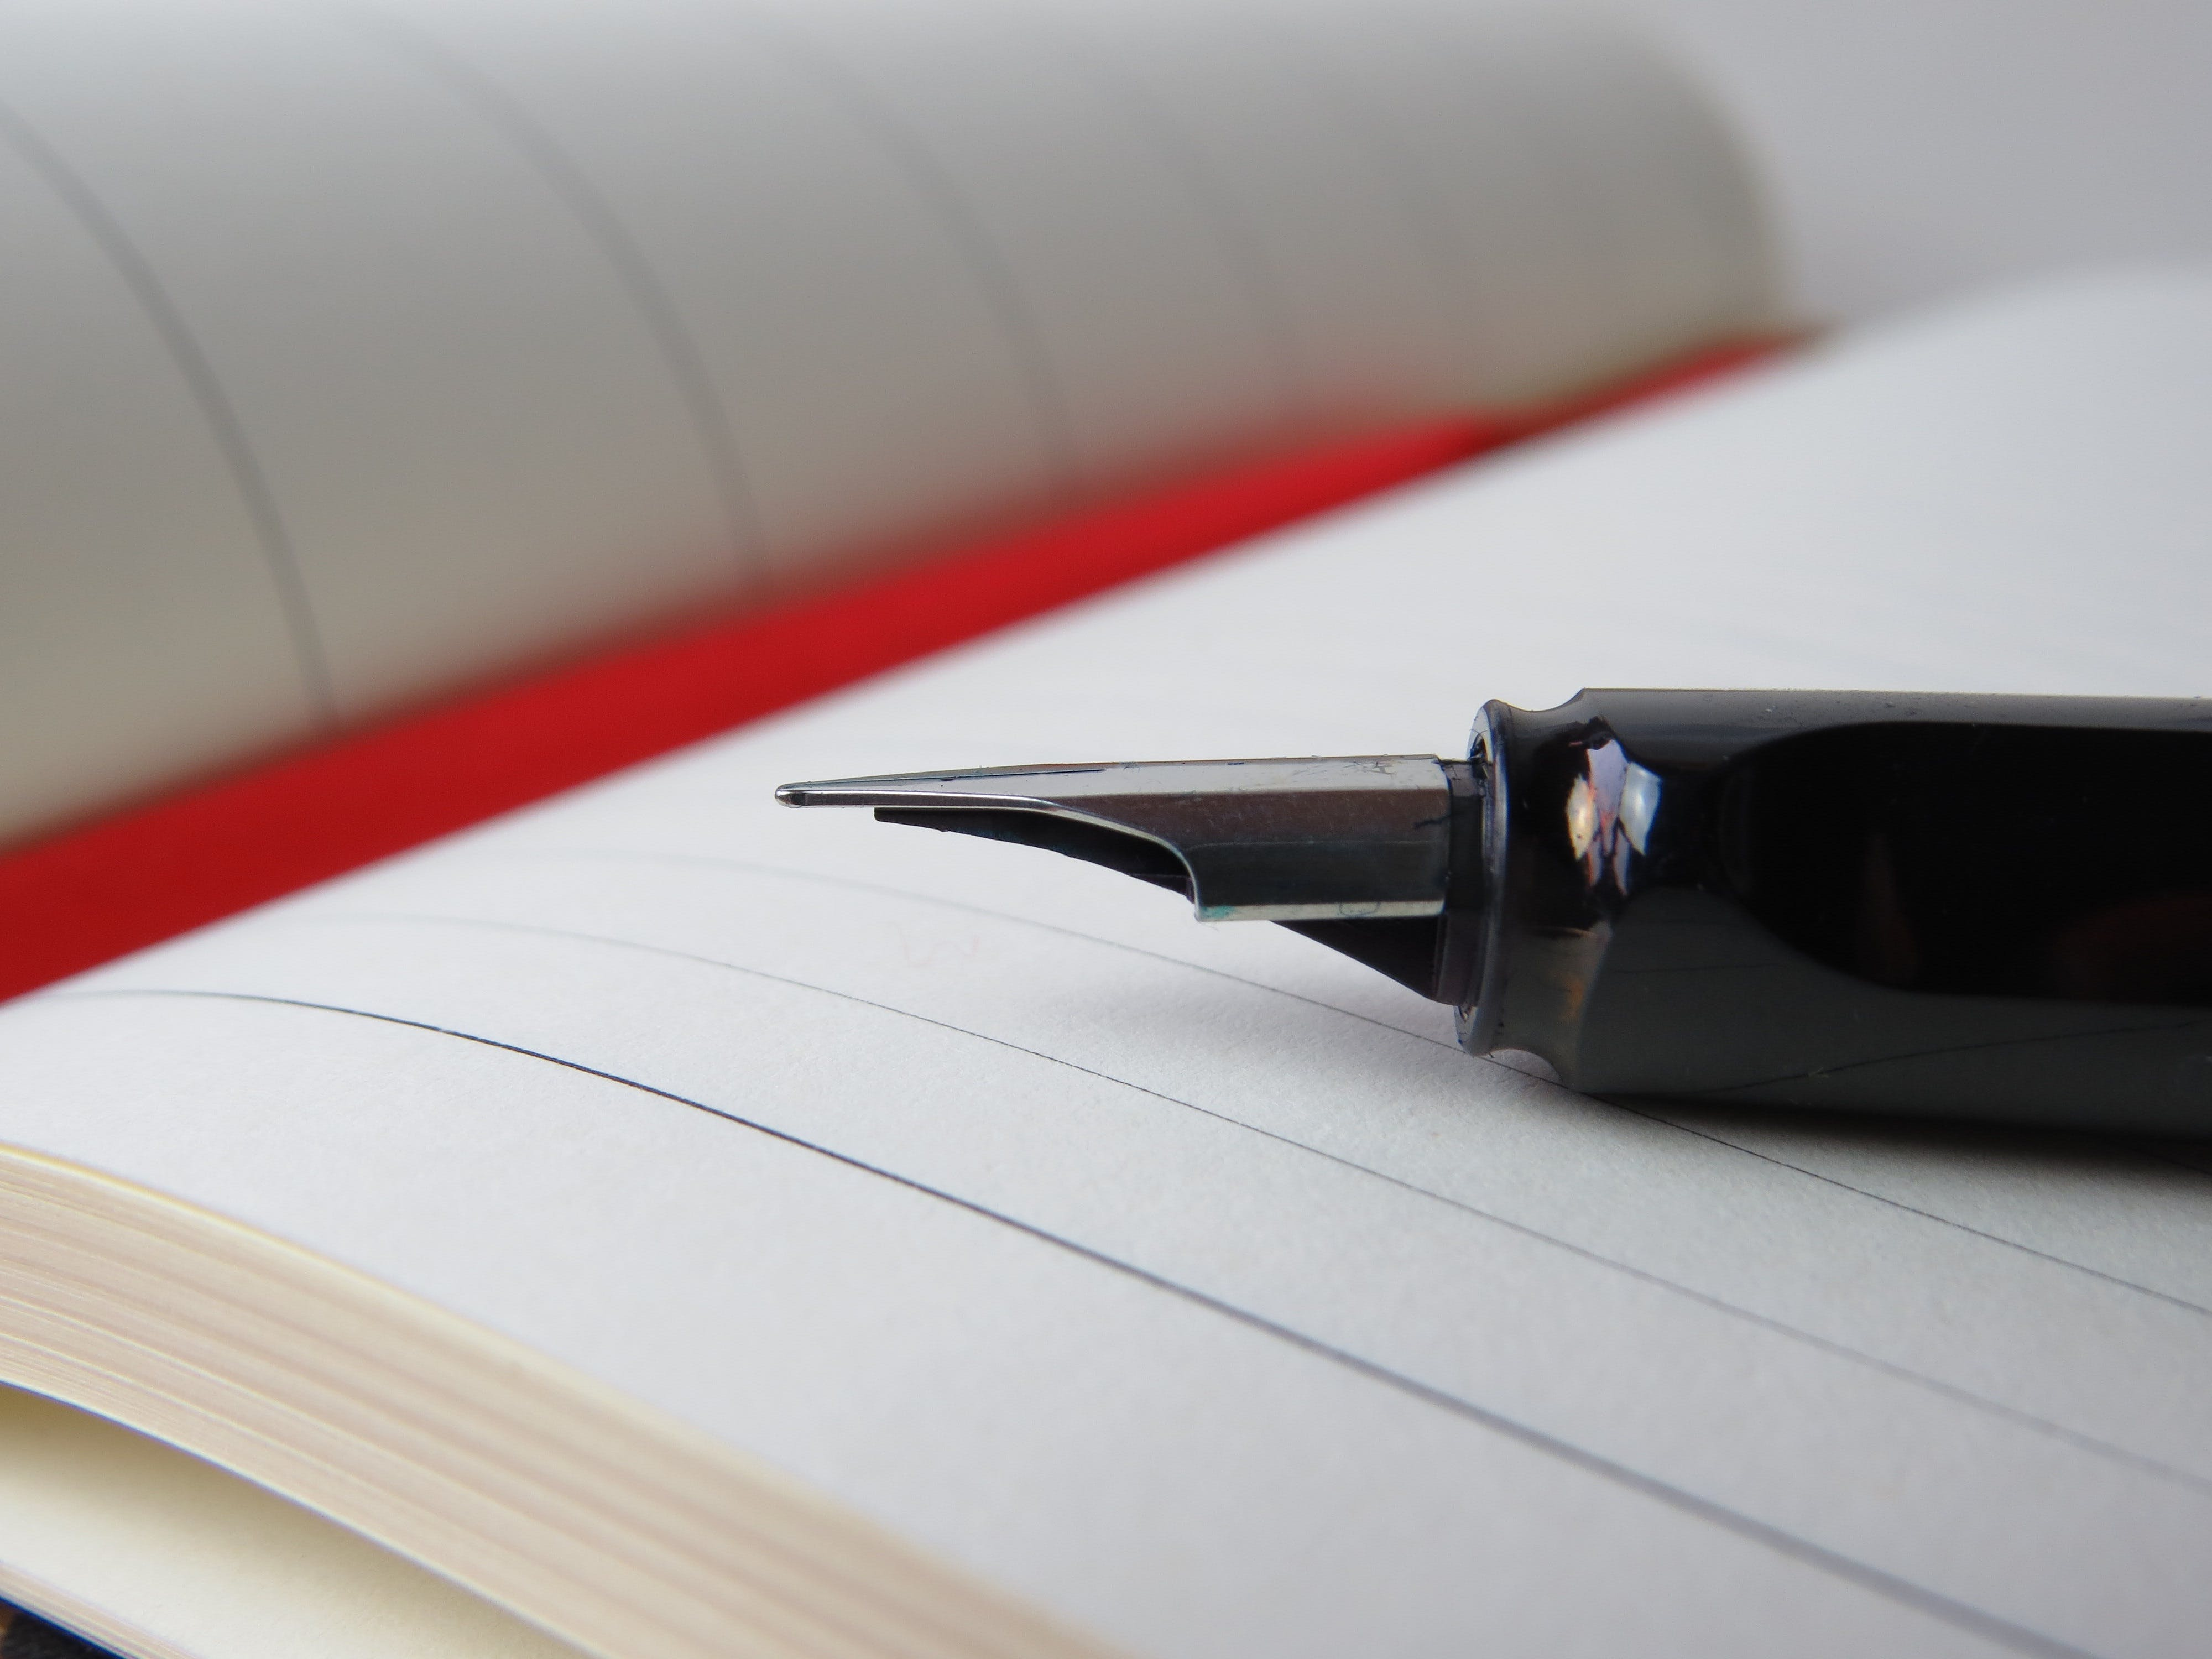 Selective Focus Photography of Calligraphy Pen Placed on Top of Open Notebook